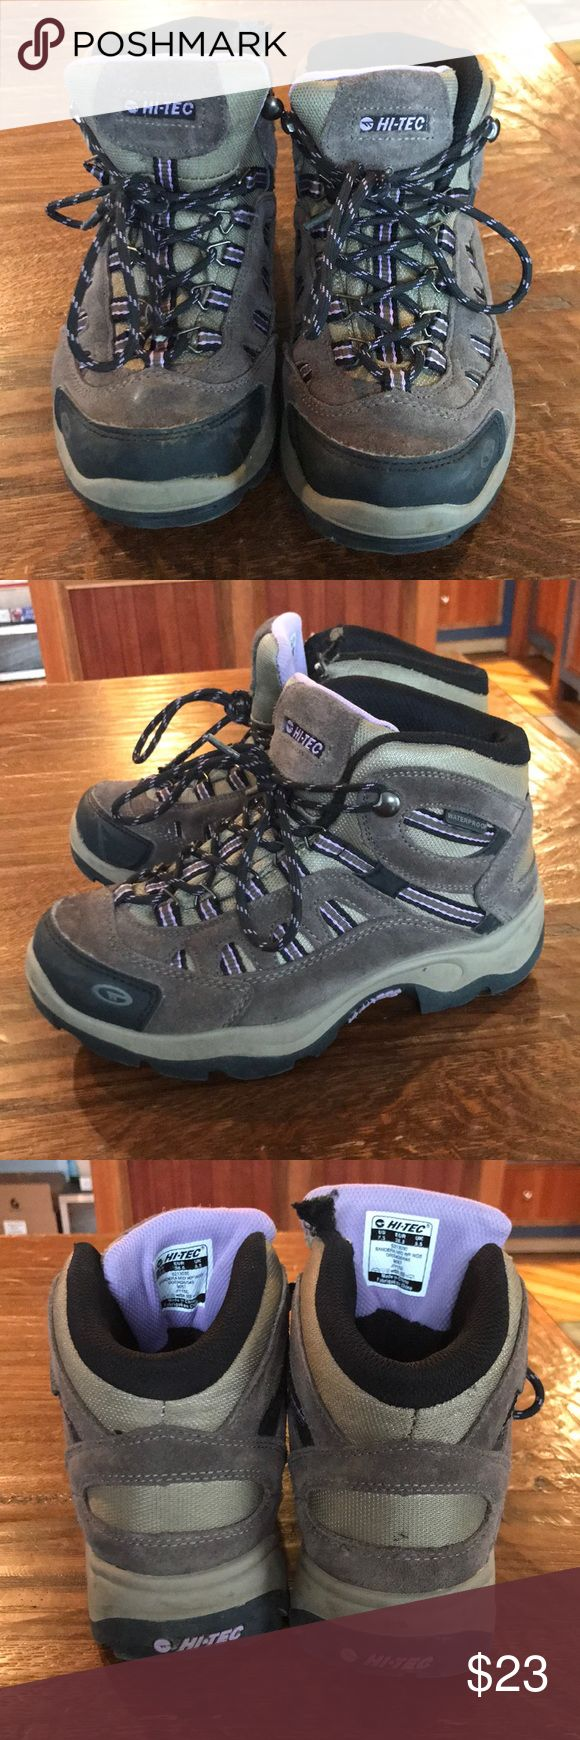 Hi-Tec hiking boots Size 7.5 hi-Tec hiking boots. Very lightly worn, still LOTS of Tread left. If my puppy hadn't gotten ahold of these, they would be in perfect condition. There are two small blemishes in one shoe as pictured where you can see she bit them. But it isn't noticeable in my opinion. Colors are gray and light purple.  These are waterproof. Hi-Tec Shoes